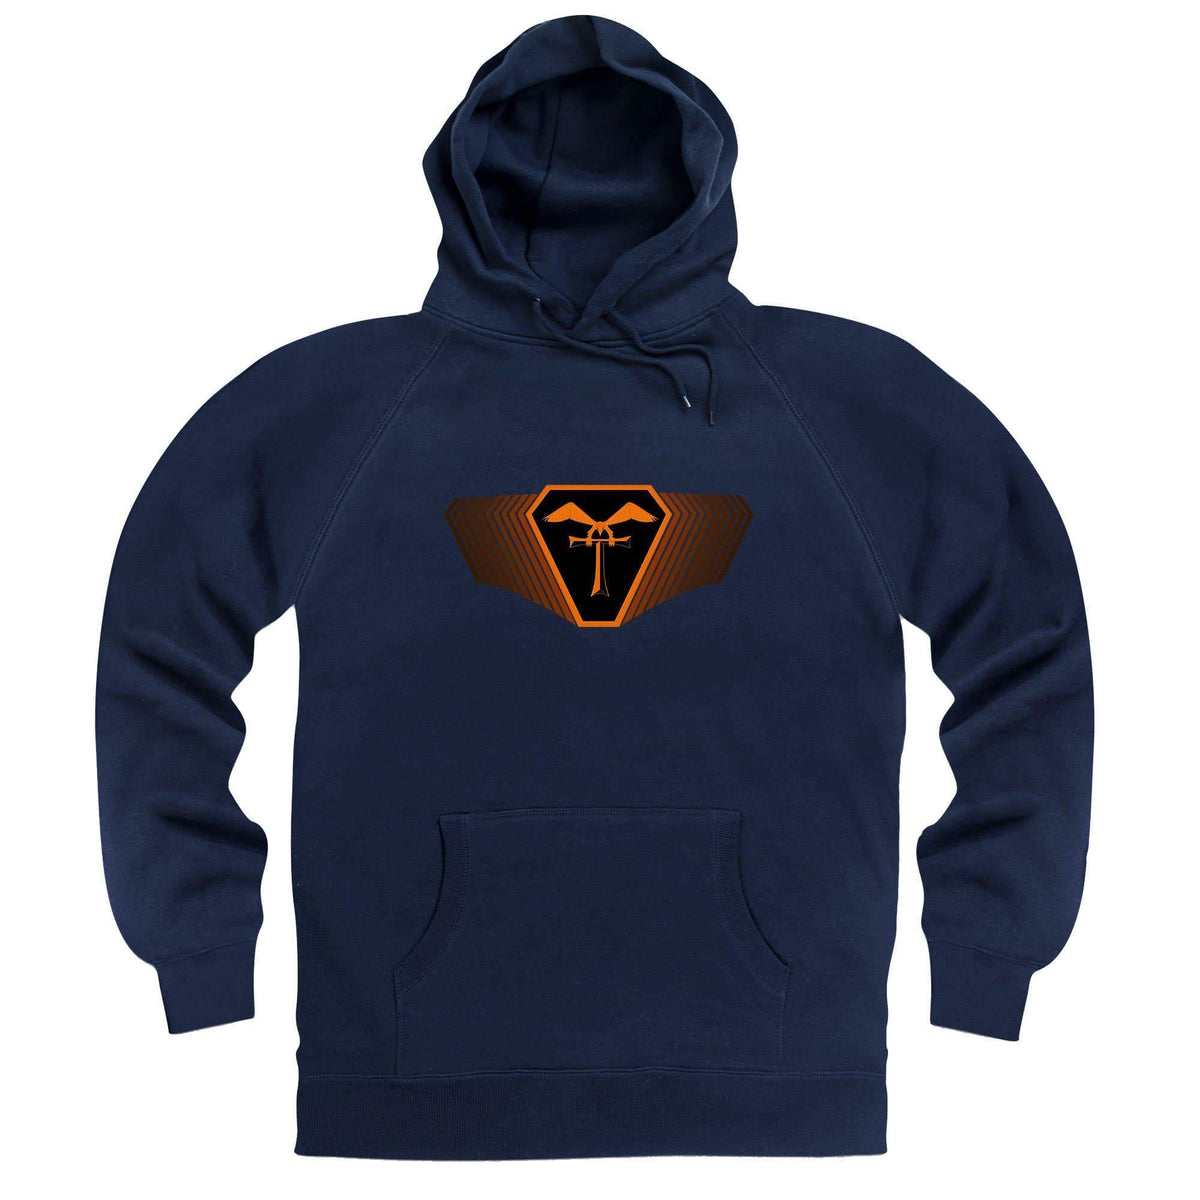 Terrahawks Orange Emblem Hoodie [Official & Exclusive] - The Gerry Anderson Store